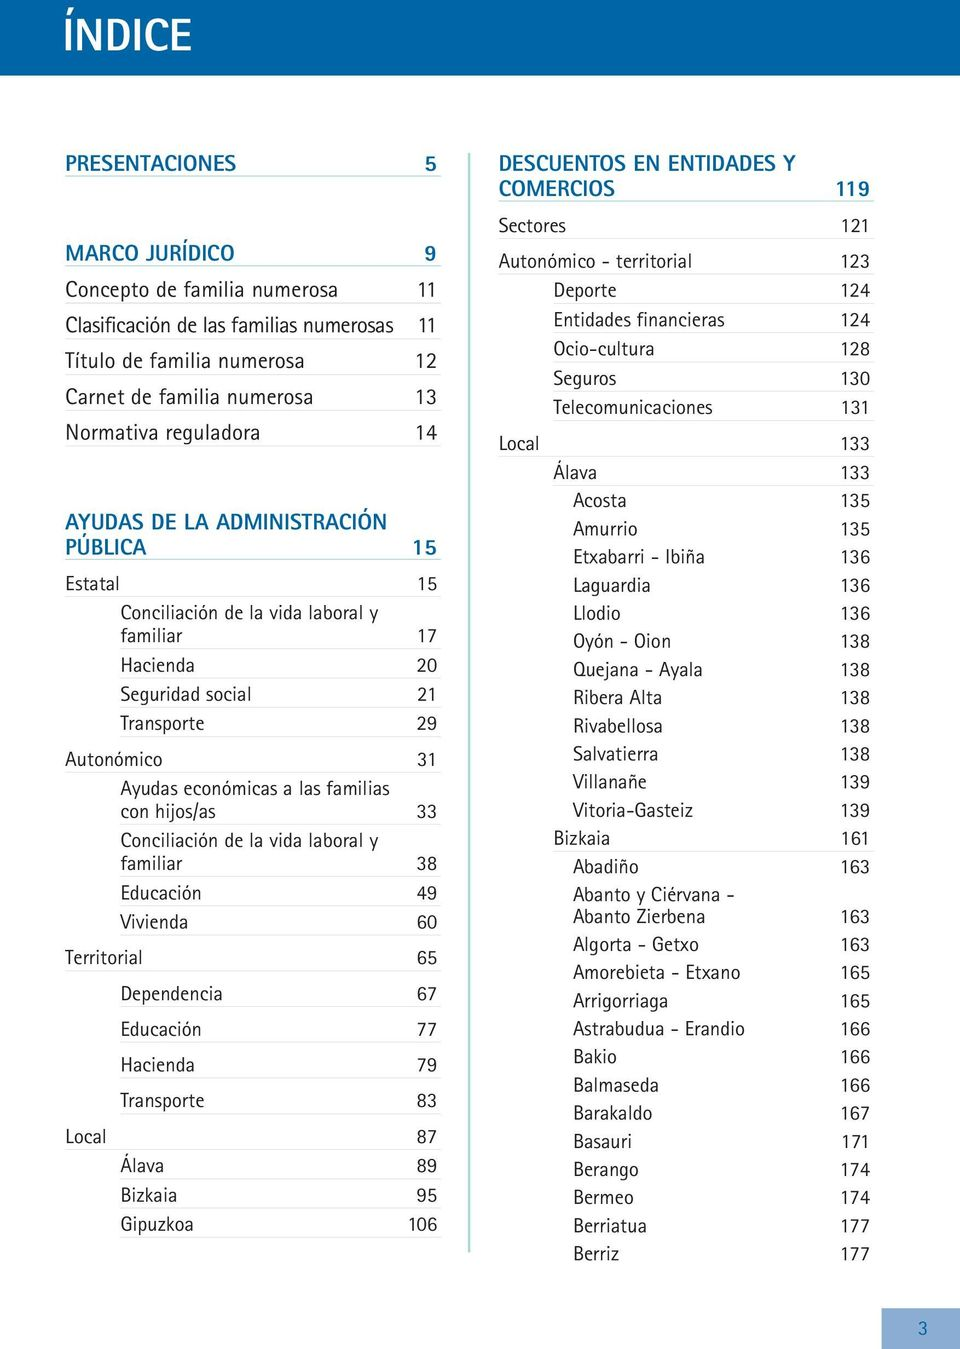 hijos/as 33 Conciliación de la vida laboral y familiar 38 Educación 49 Vivienda 60 Territorial 65 Dependencia 67 Educación 77 Hacienda 79 Transporte 83 Local 87 Álava 89 Bizkaia 95 Gipuzkoa 106